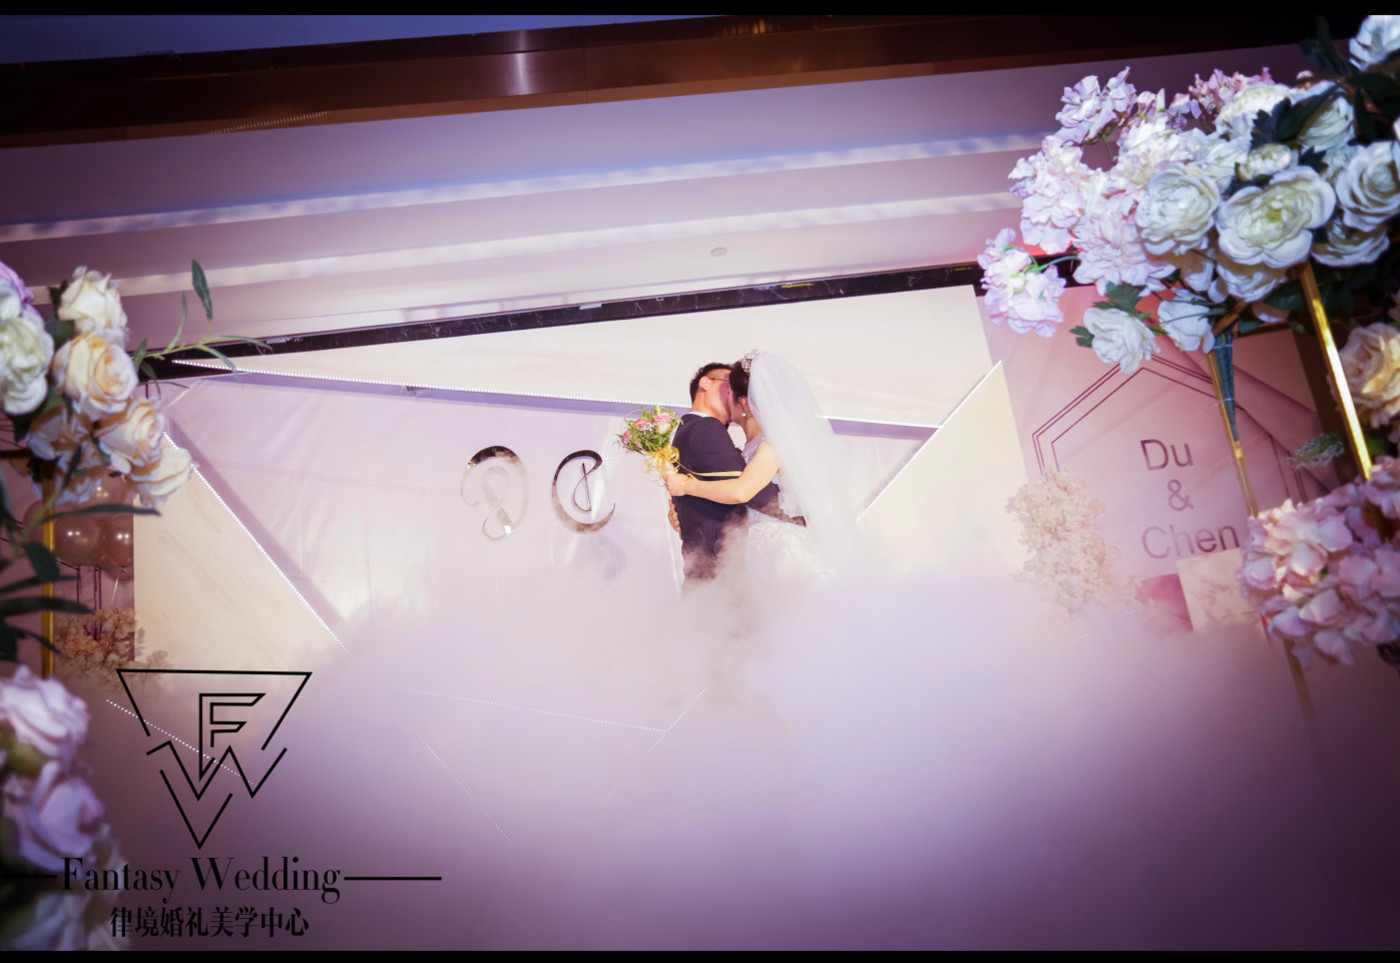 「Fantasy Wedding」& DQ23